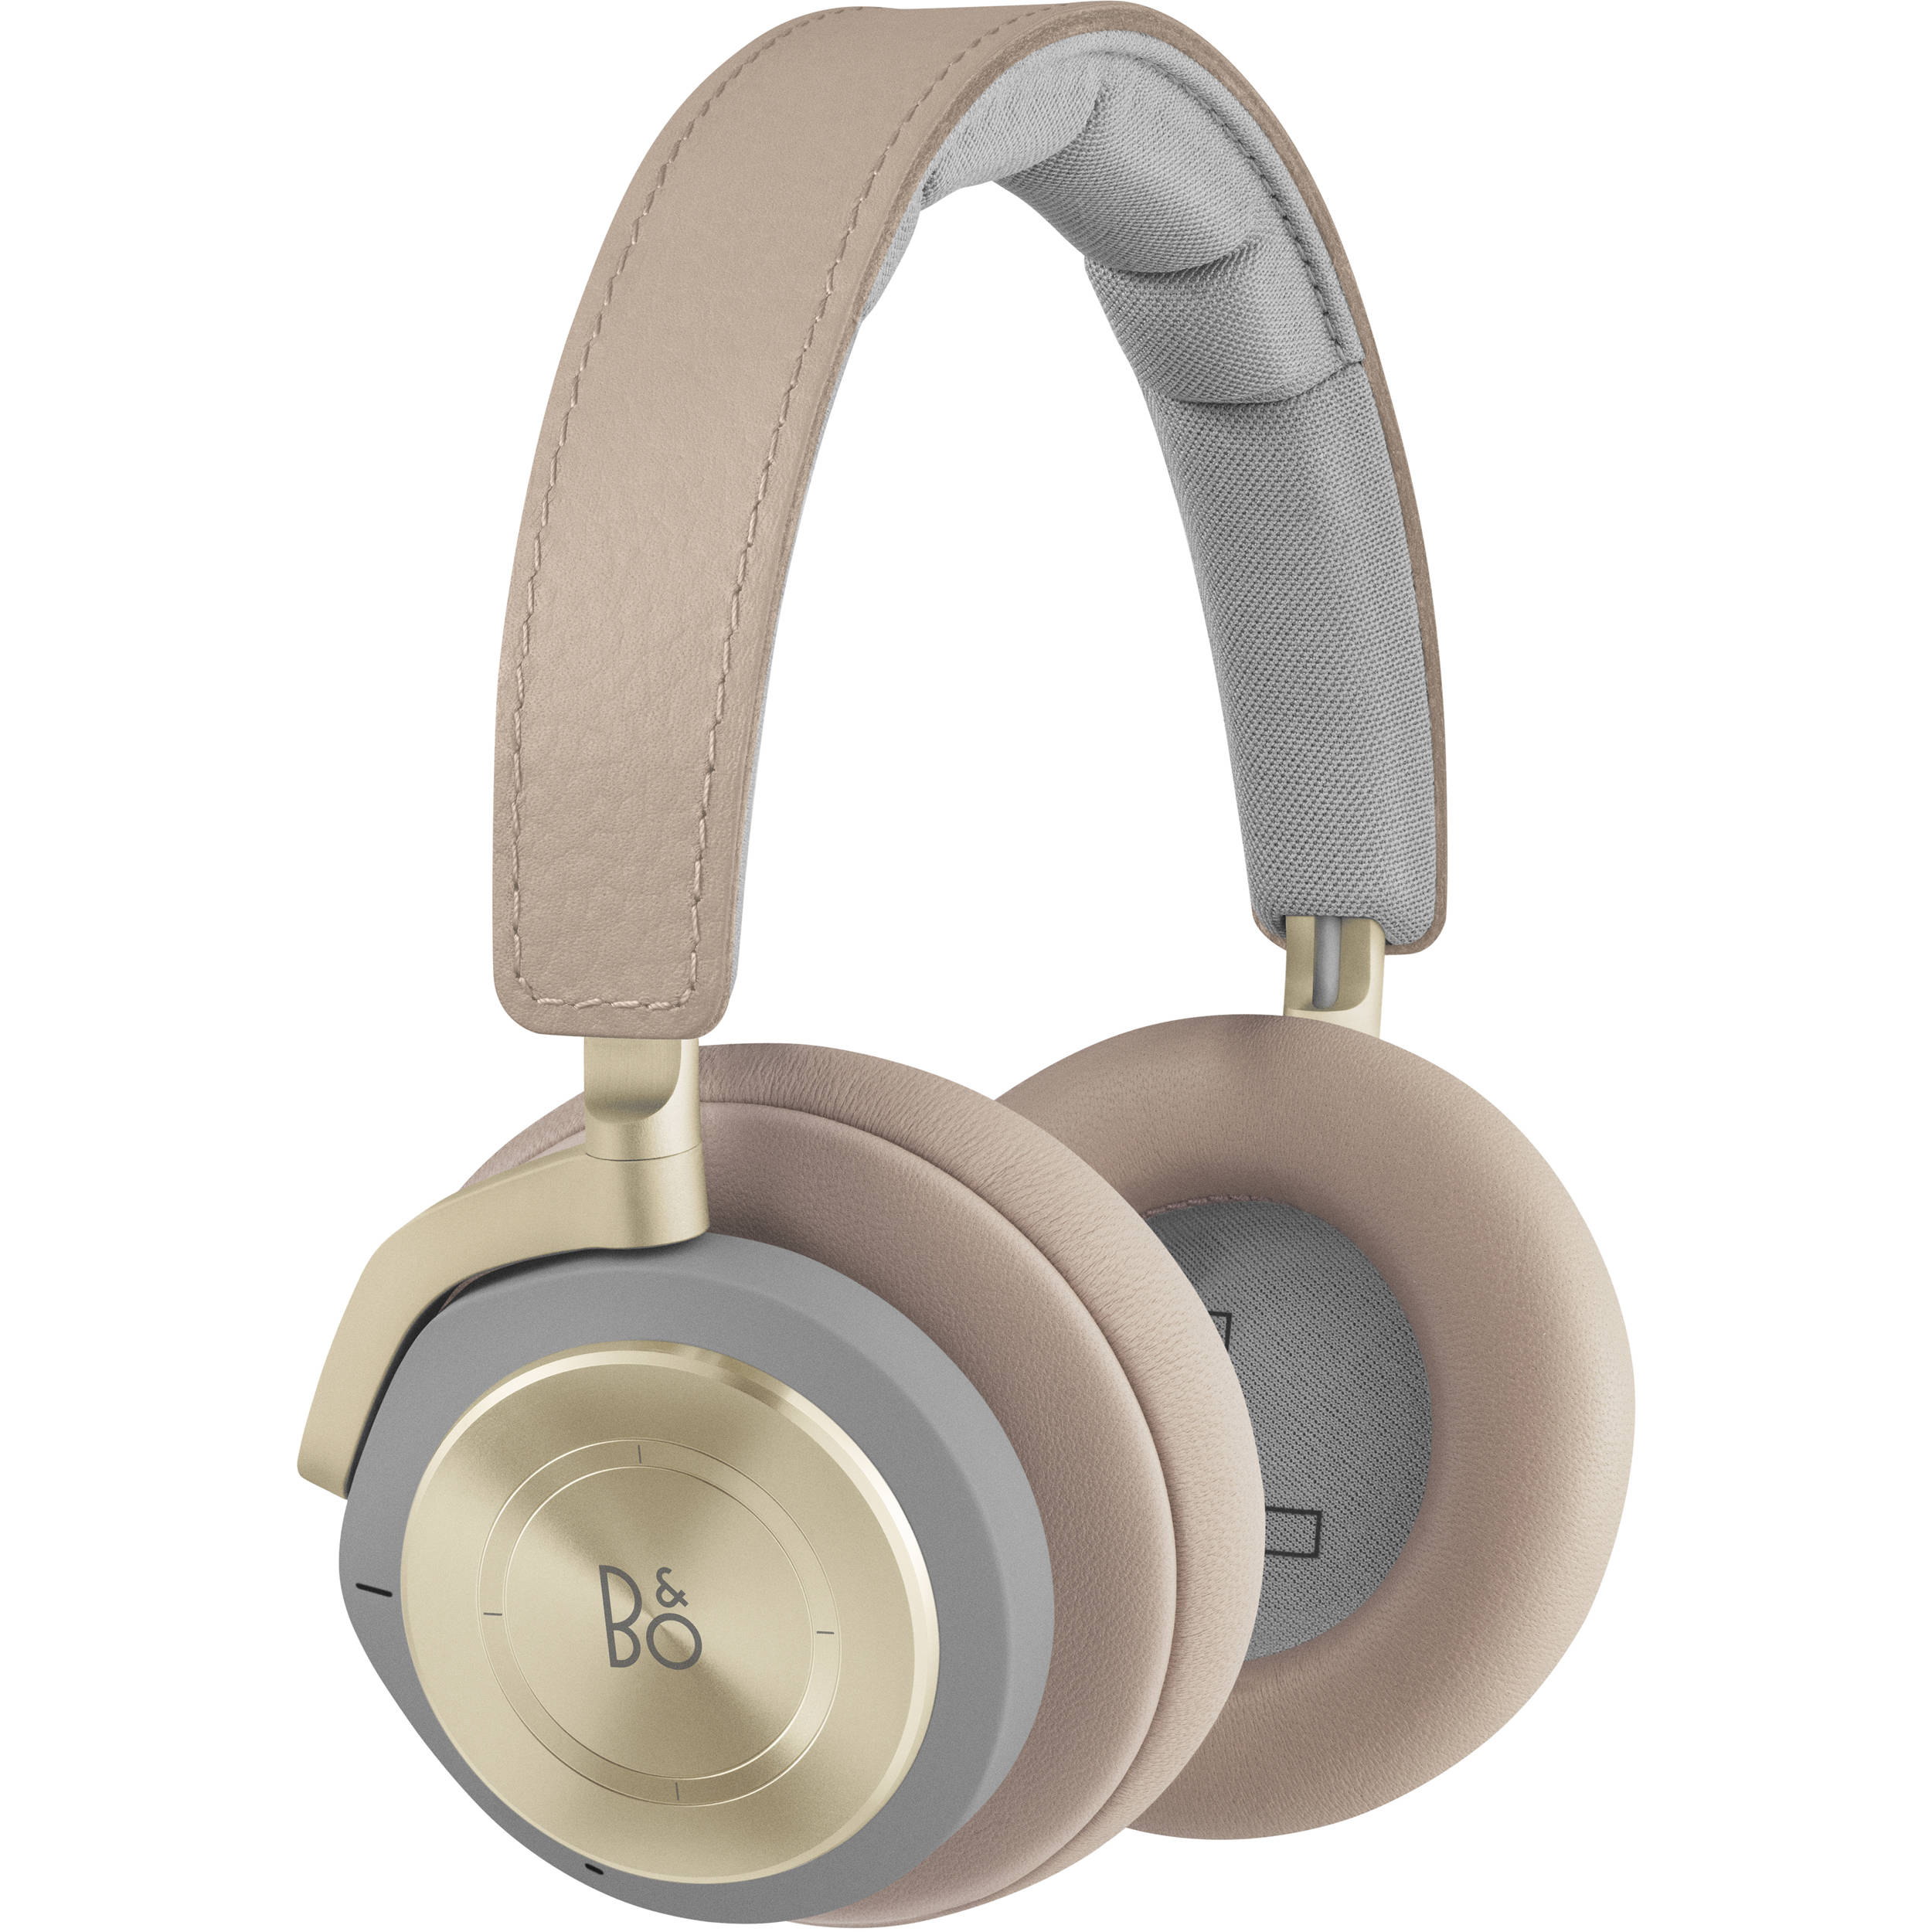 52b6ce337b1 Bang & Olufsen Beoplay H9 Noise-Canceling Wireless 1646301 B&H